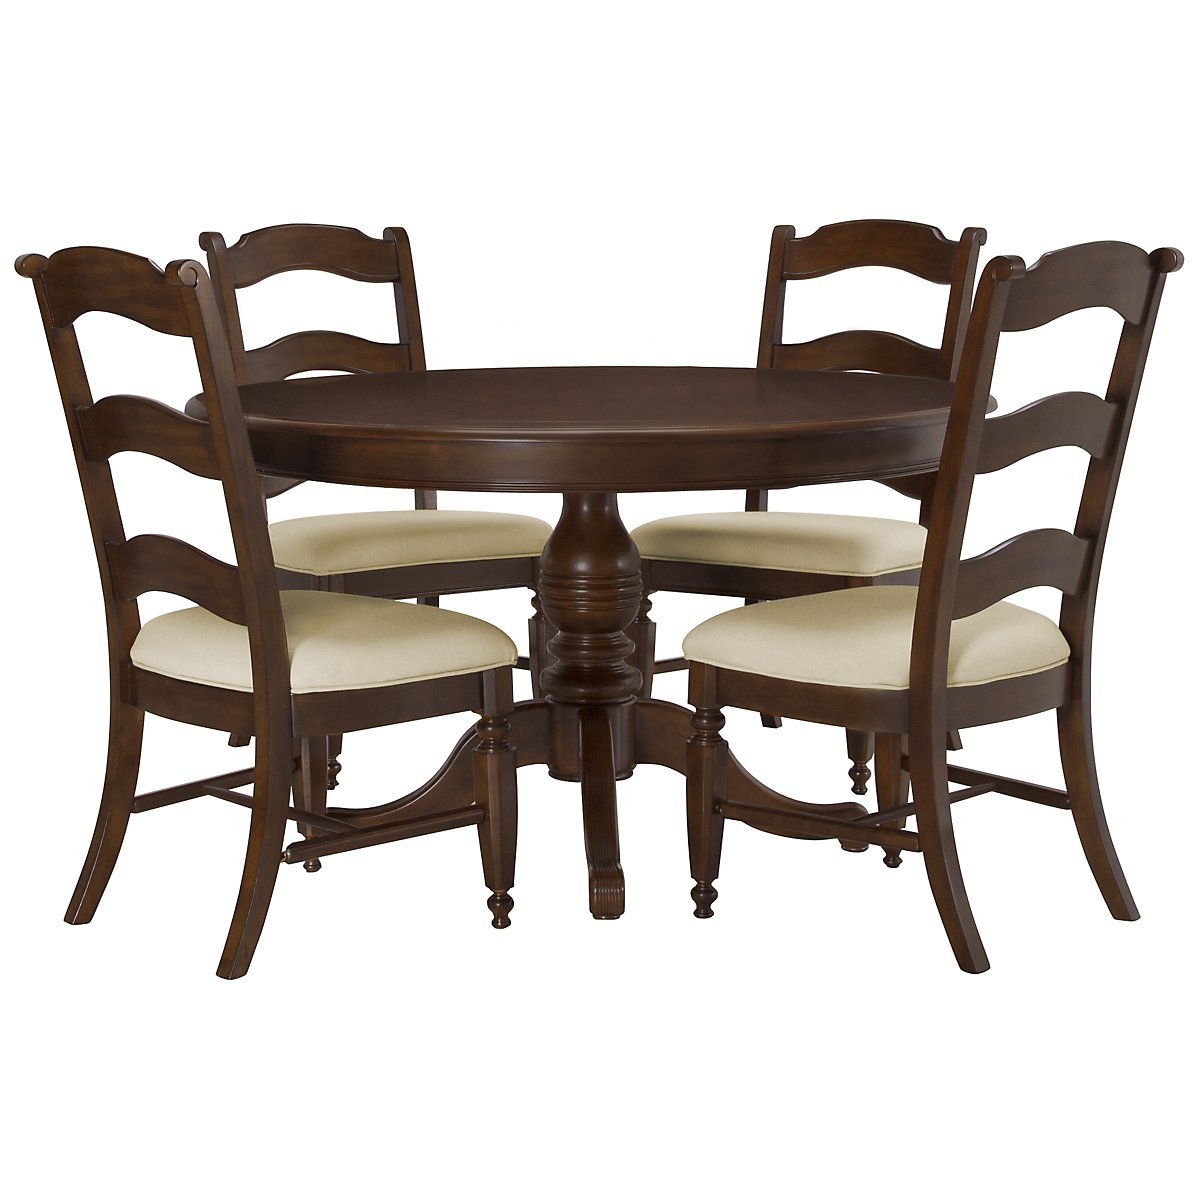 Claire Dark Tone Round Table & 4 Wood Chairs